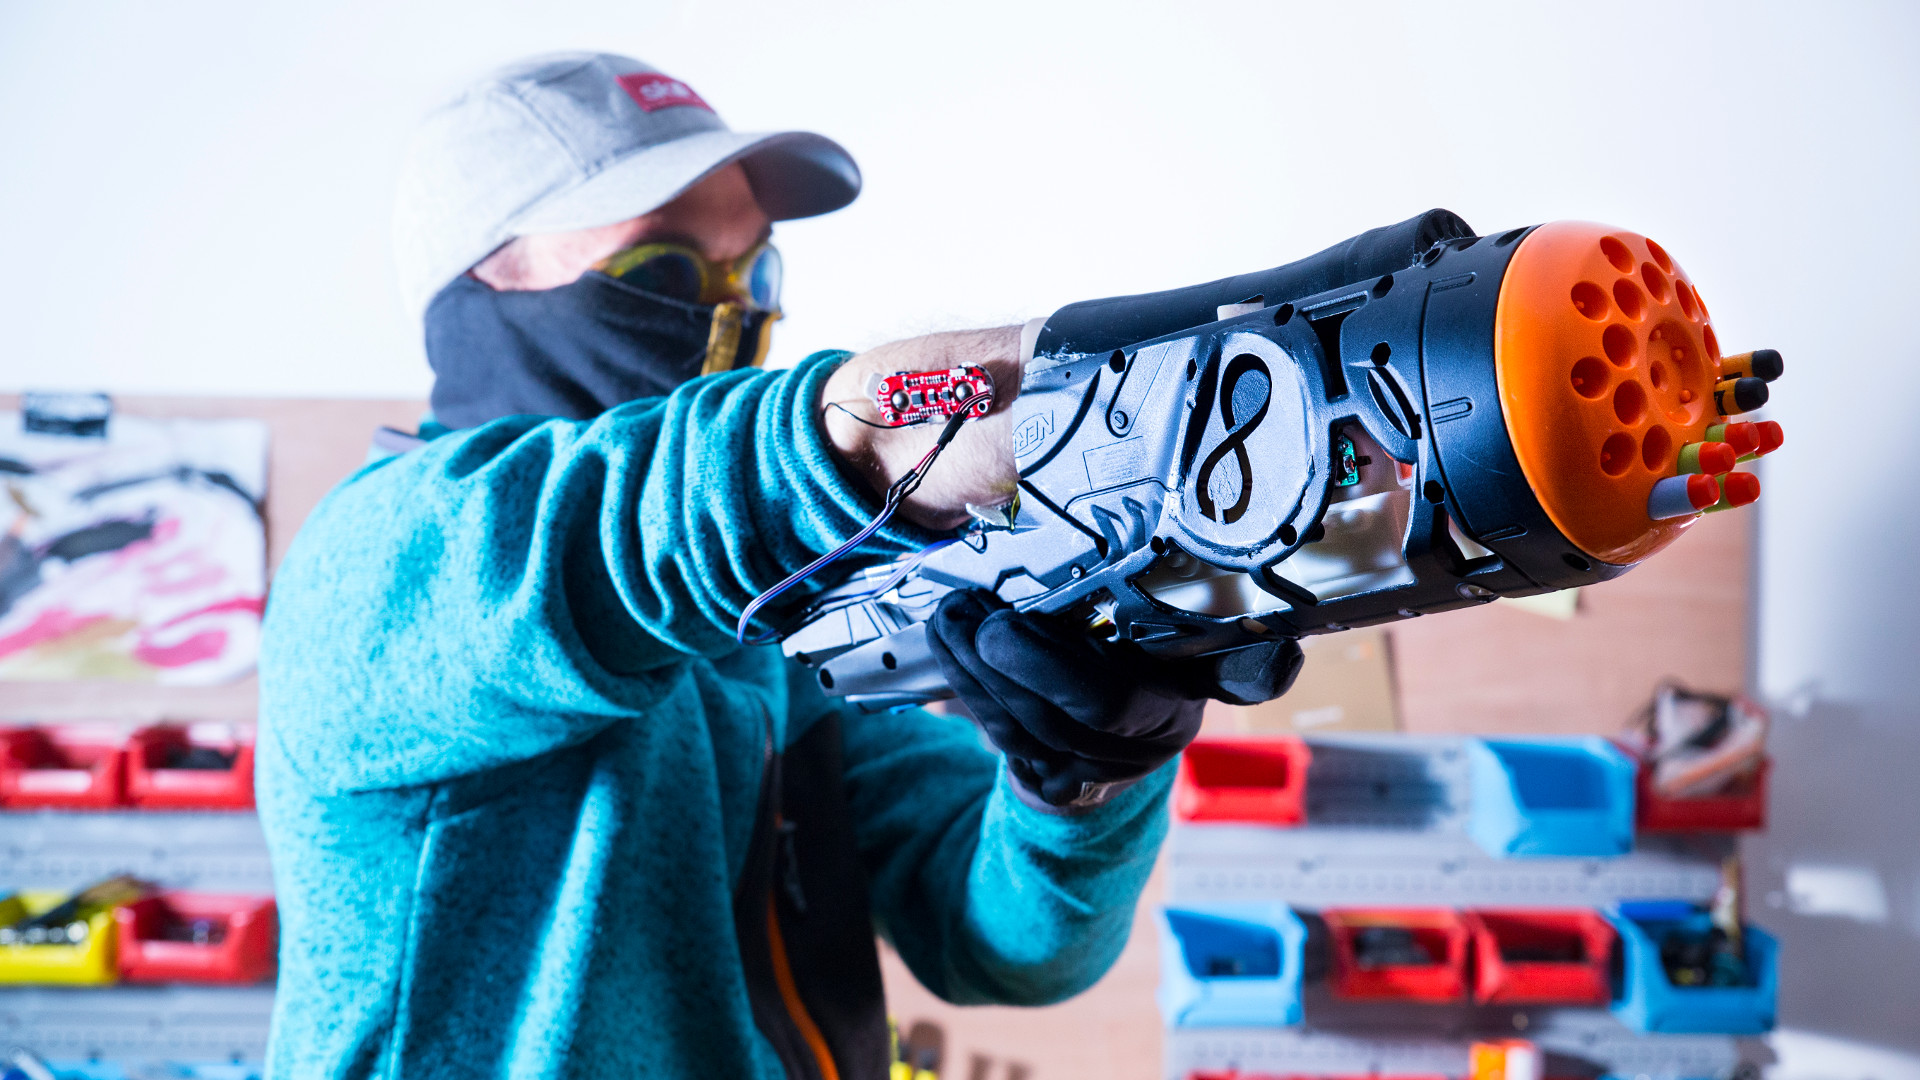 This is a Prosthetic Nerf Gun Made with 3D Printing | All3DP